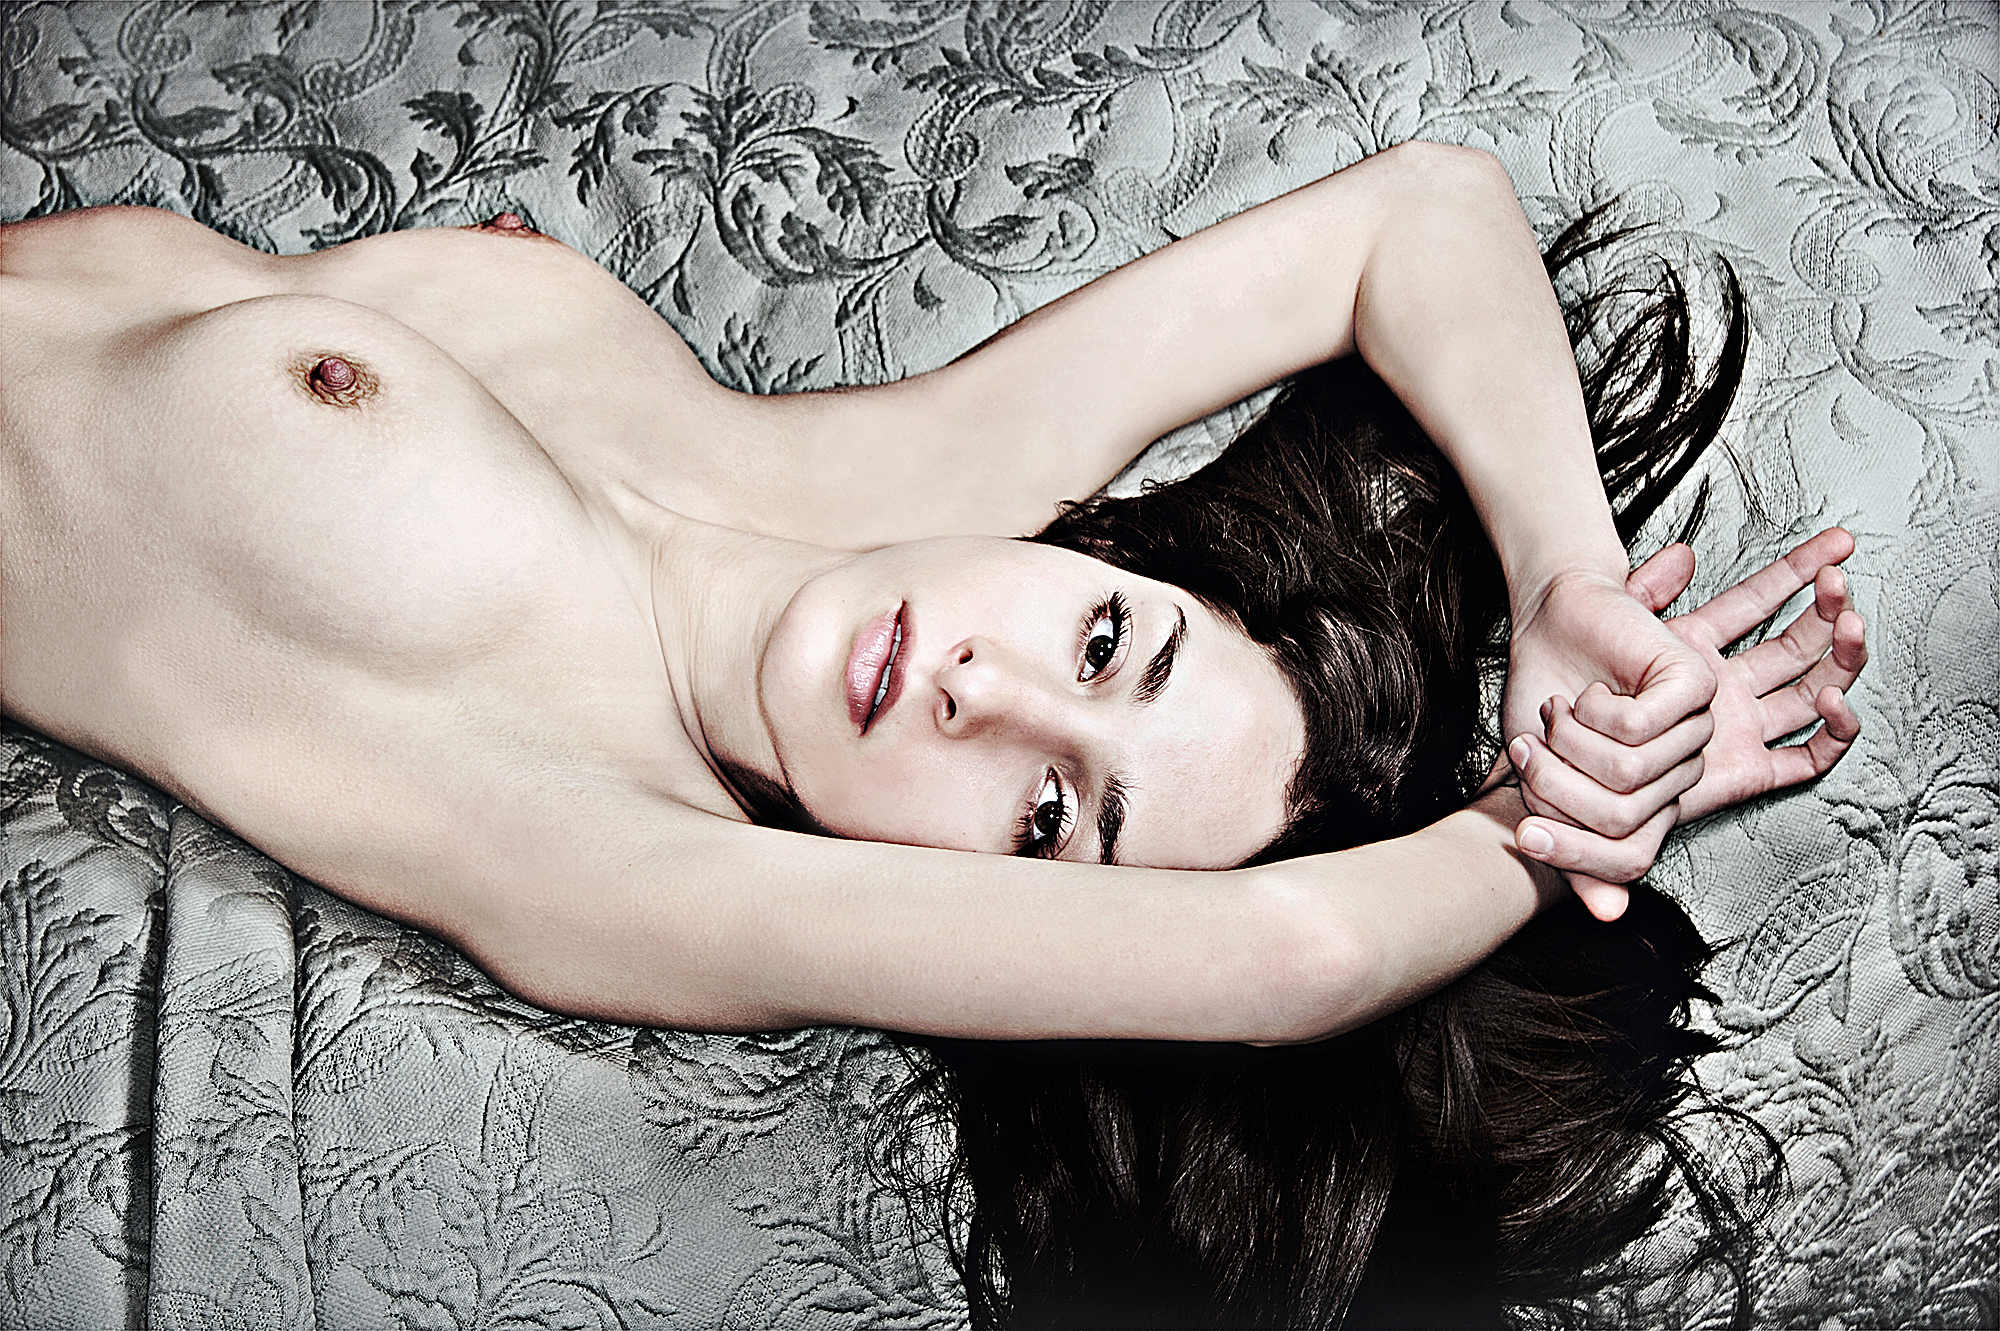 Tony_Ward_erotic_fashion_photography_muse_Isabell_Reneaux_natural_breasts_bedroom_scene_reclining